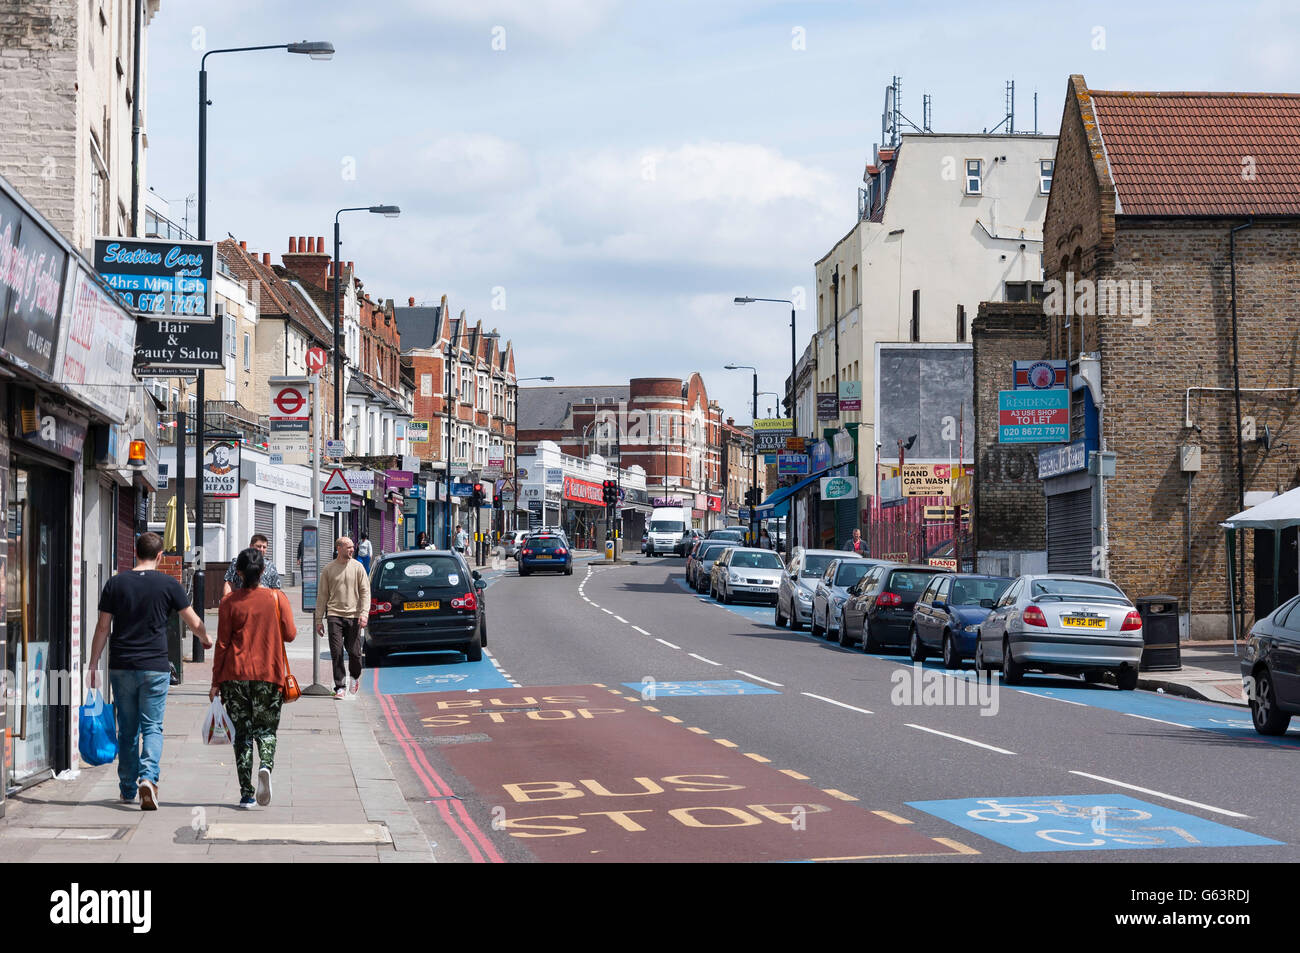 Upper Tooting Road, Tooting Bec, London Borough of Wandsworth, Greater London, England, United Kingdom - Stock Image